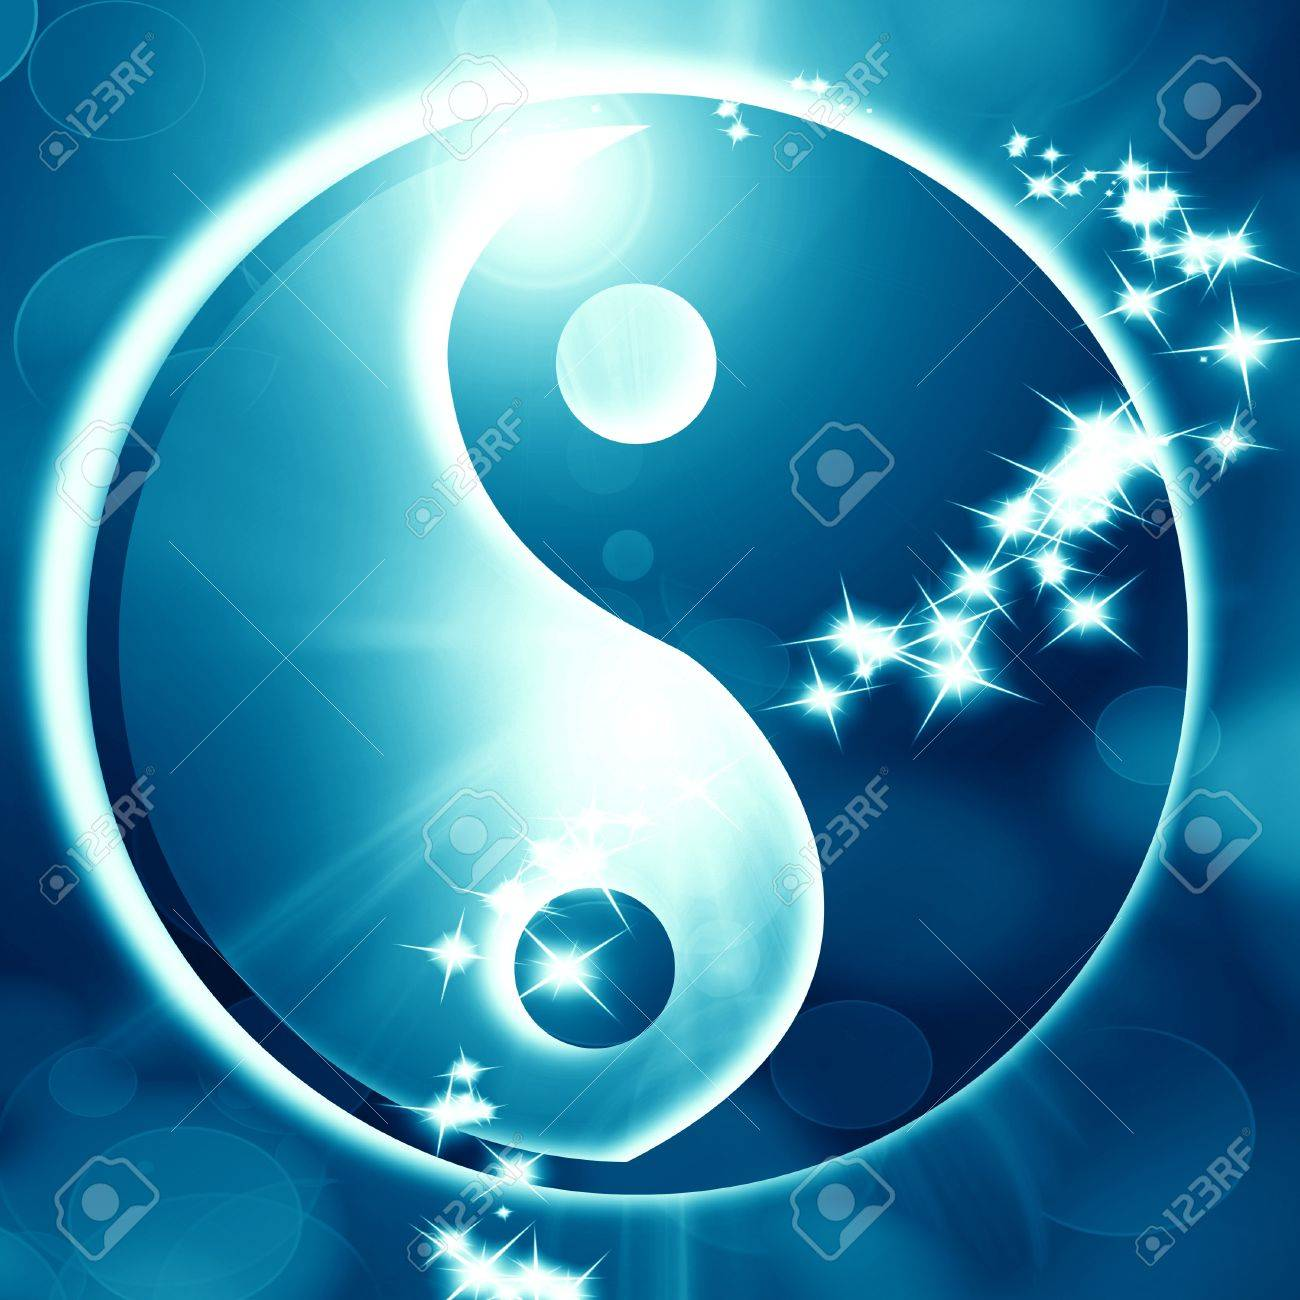 Yin Yang sign on a glowing background with some light rays Stock Photo - 15612672